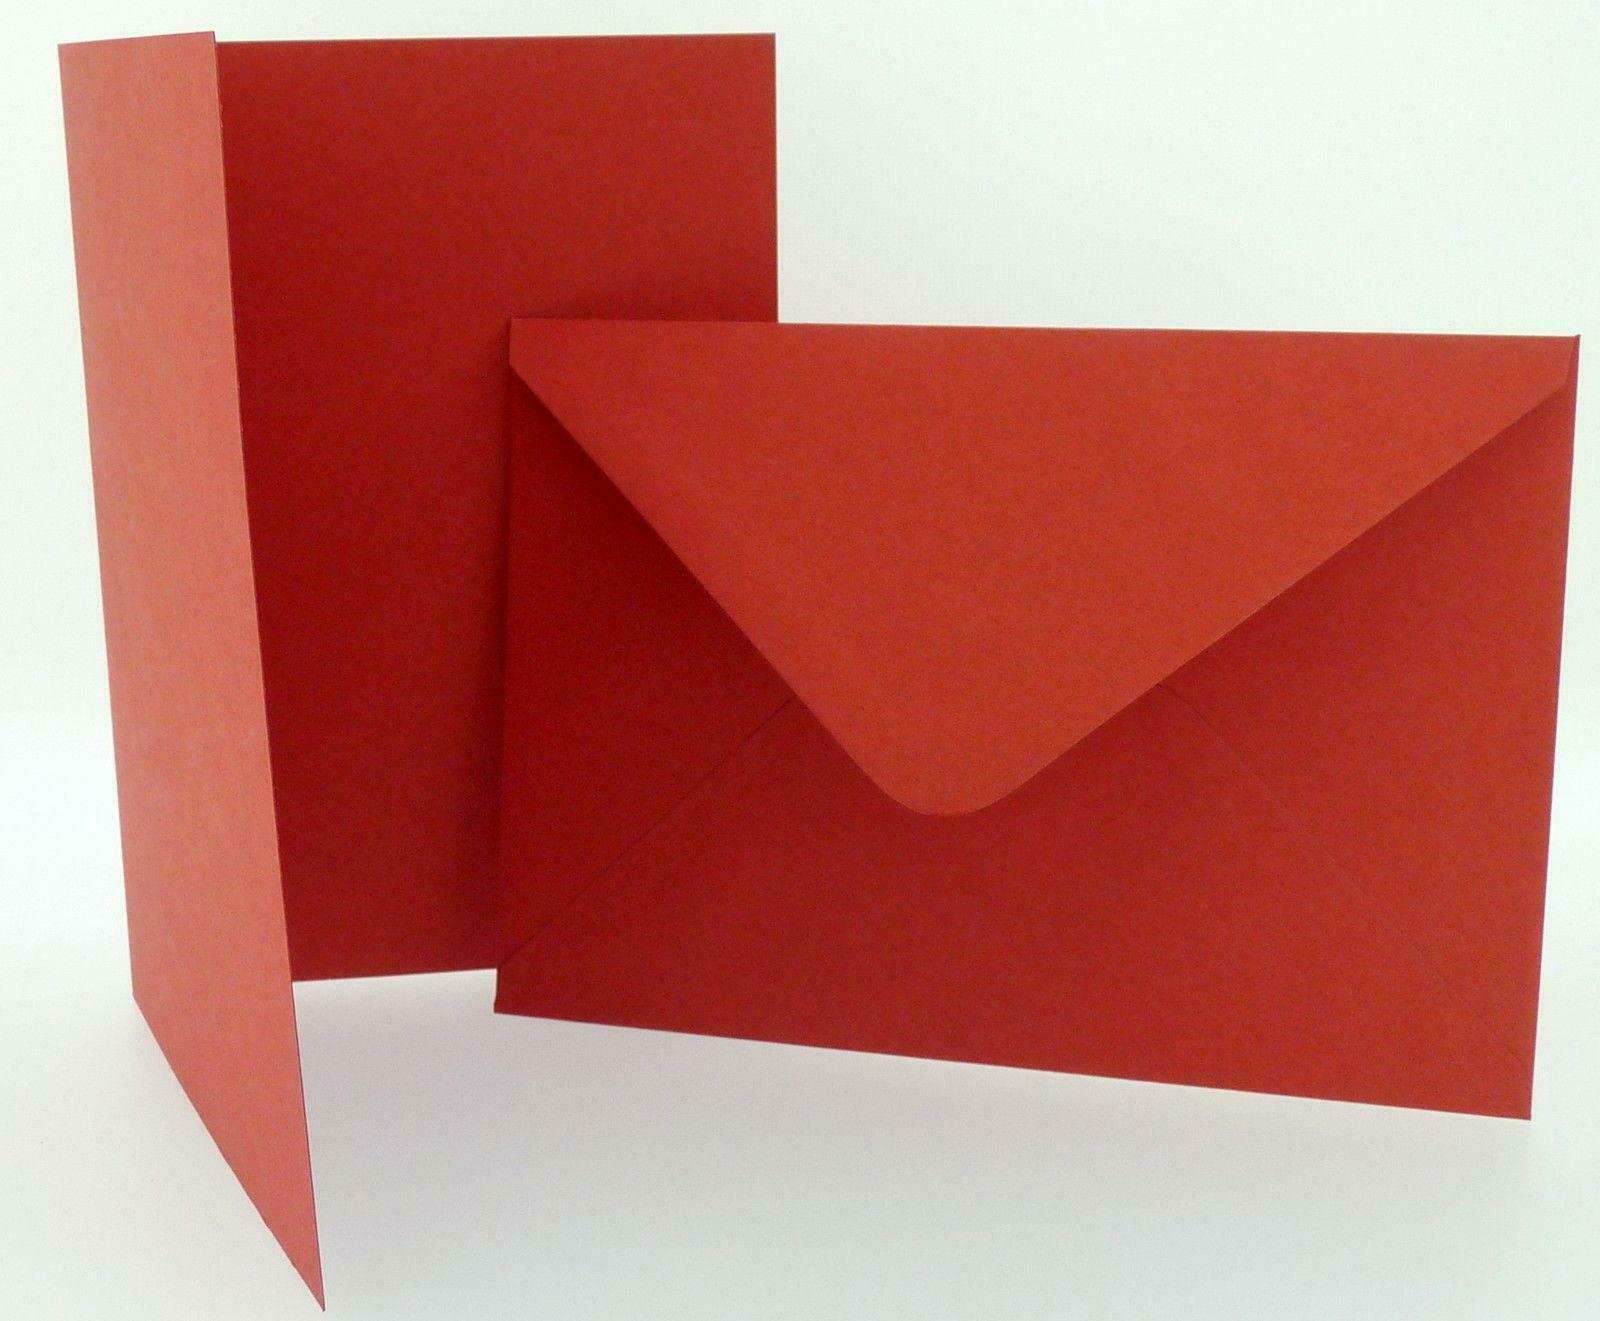 PACK OF CRAFT UK Red Blank Christmas Cards Envelopes 4 x 4 5 x 7 6 x ...